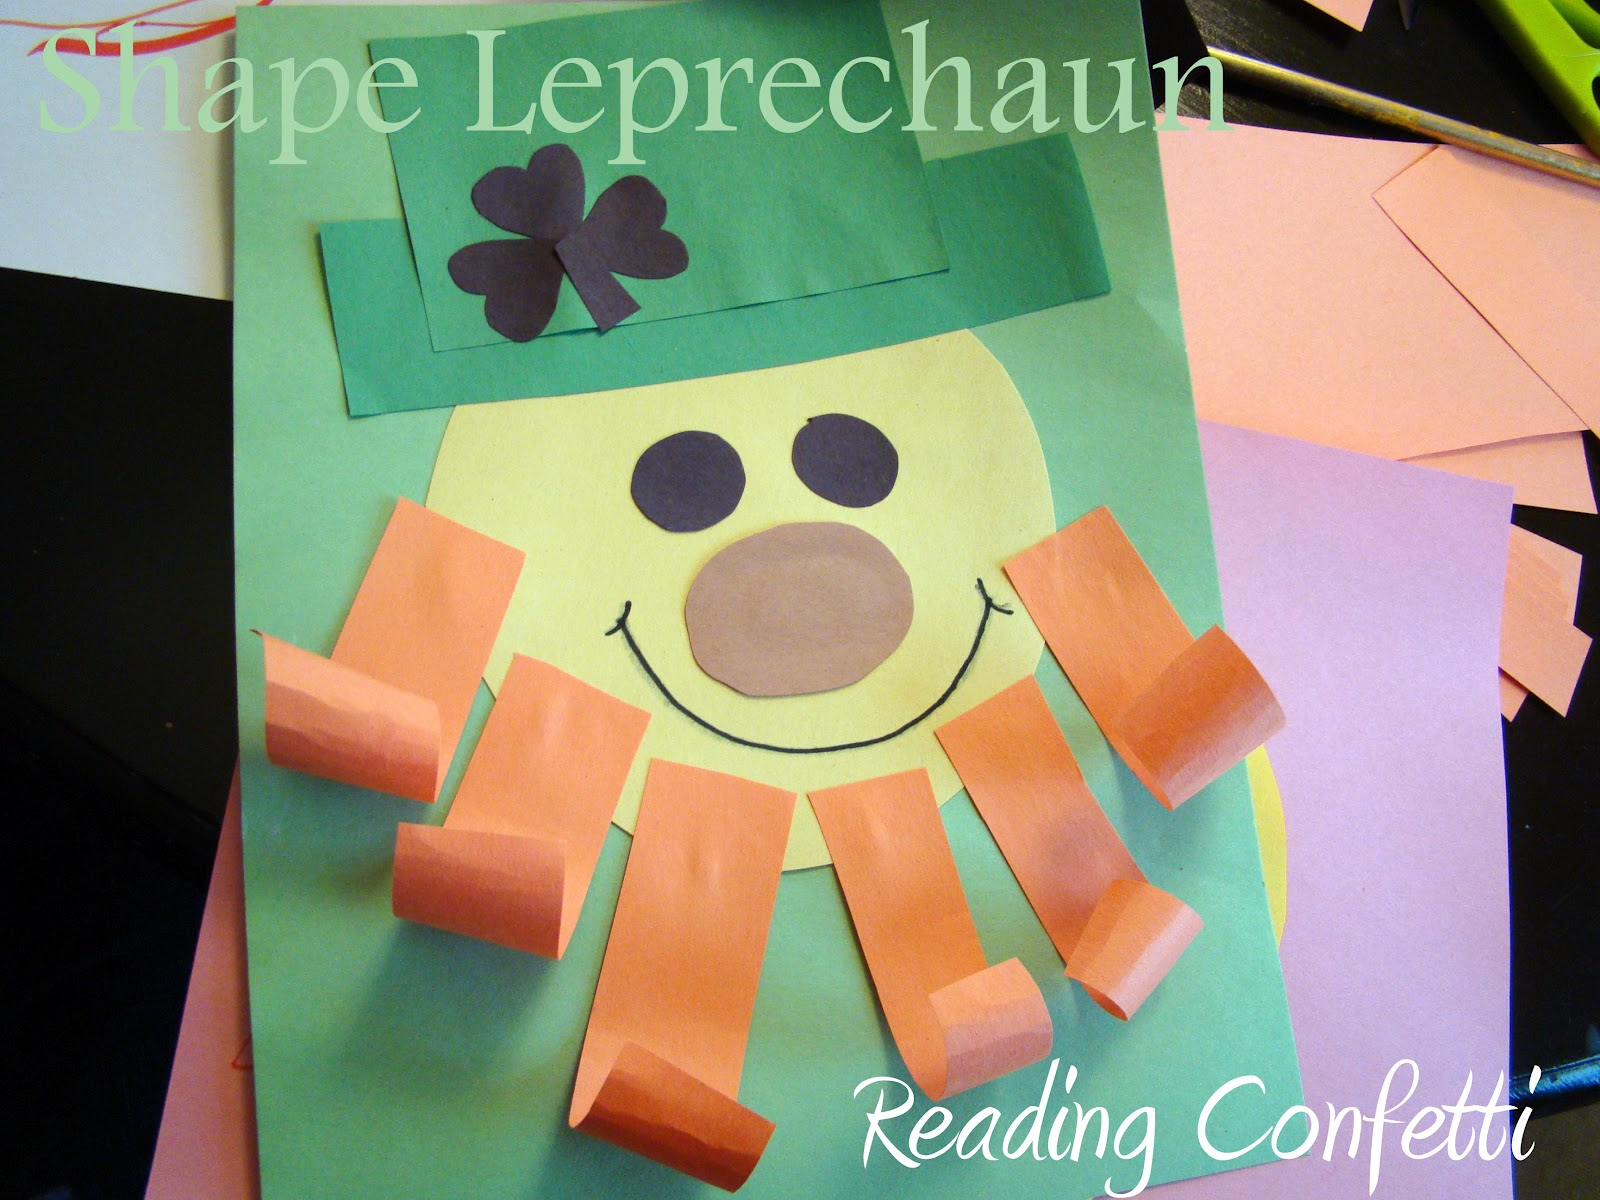 Shape Leprechauns Reading Confetti